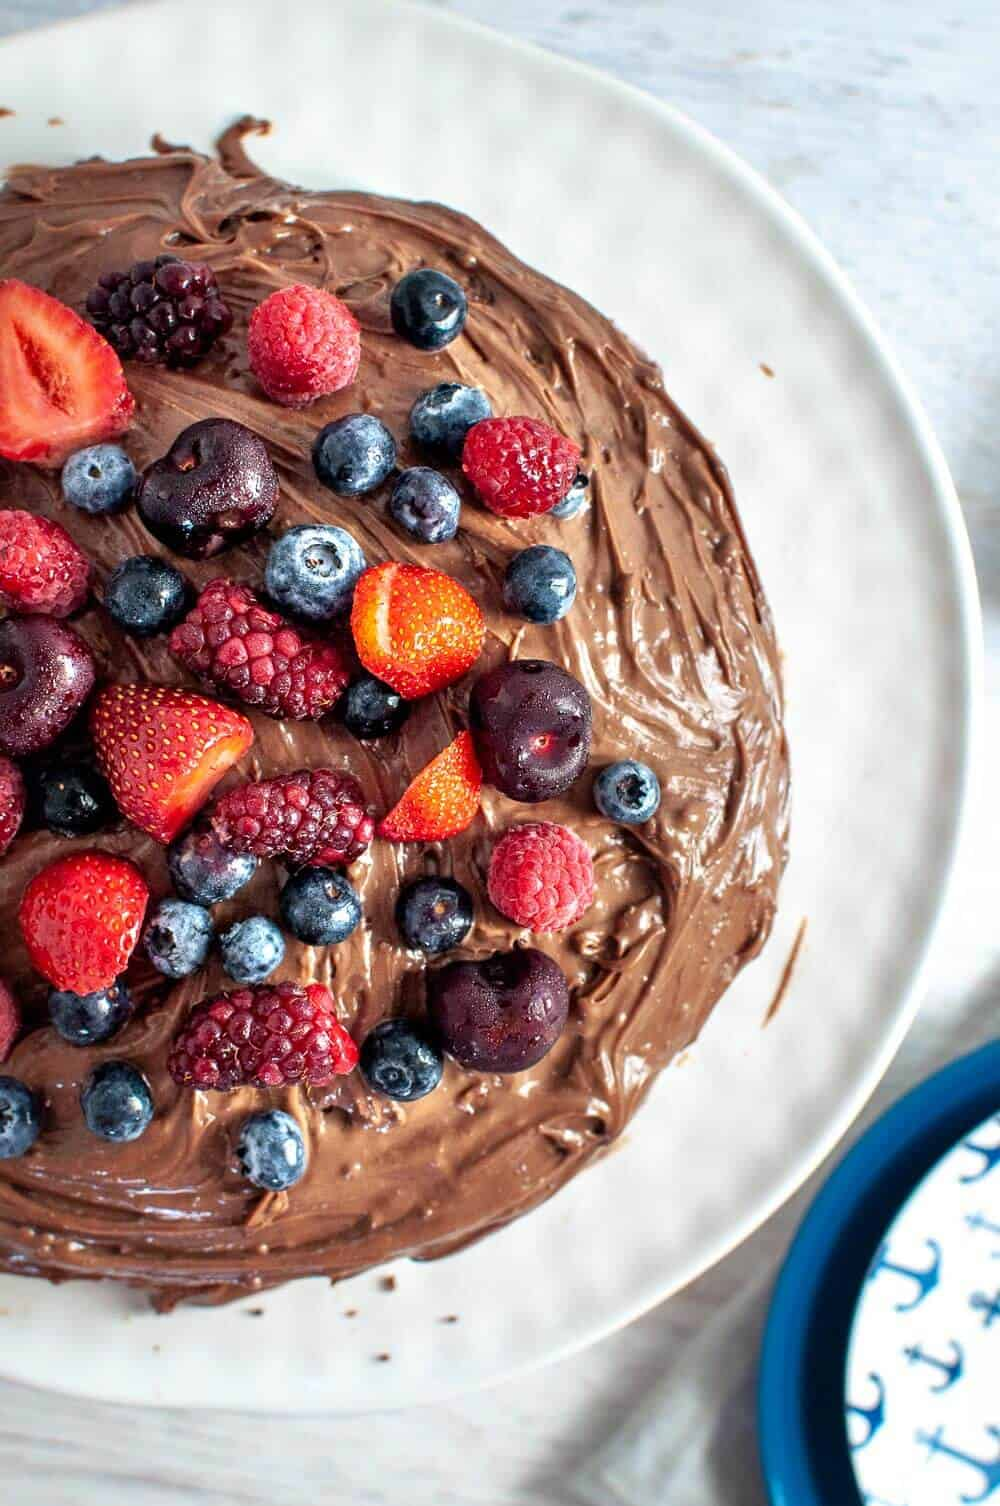 Chocolate date cake with ganache and berries on a white plate